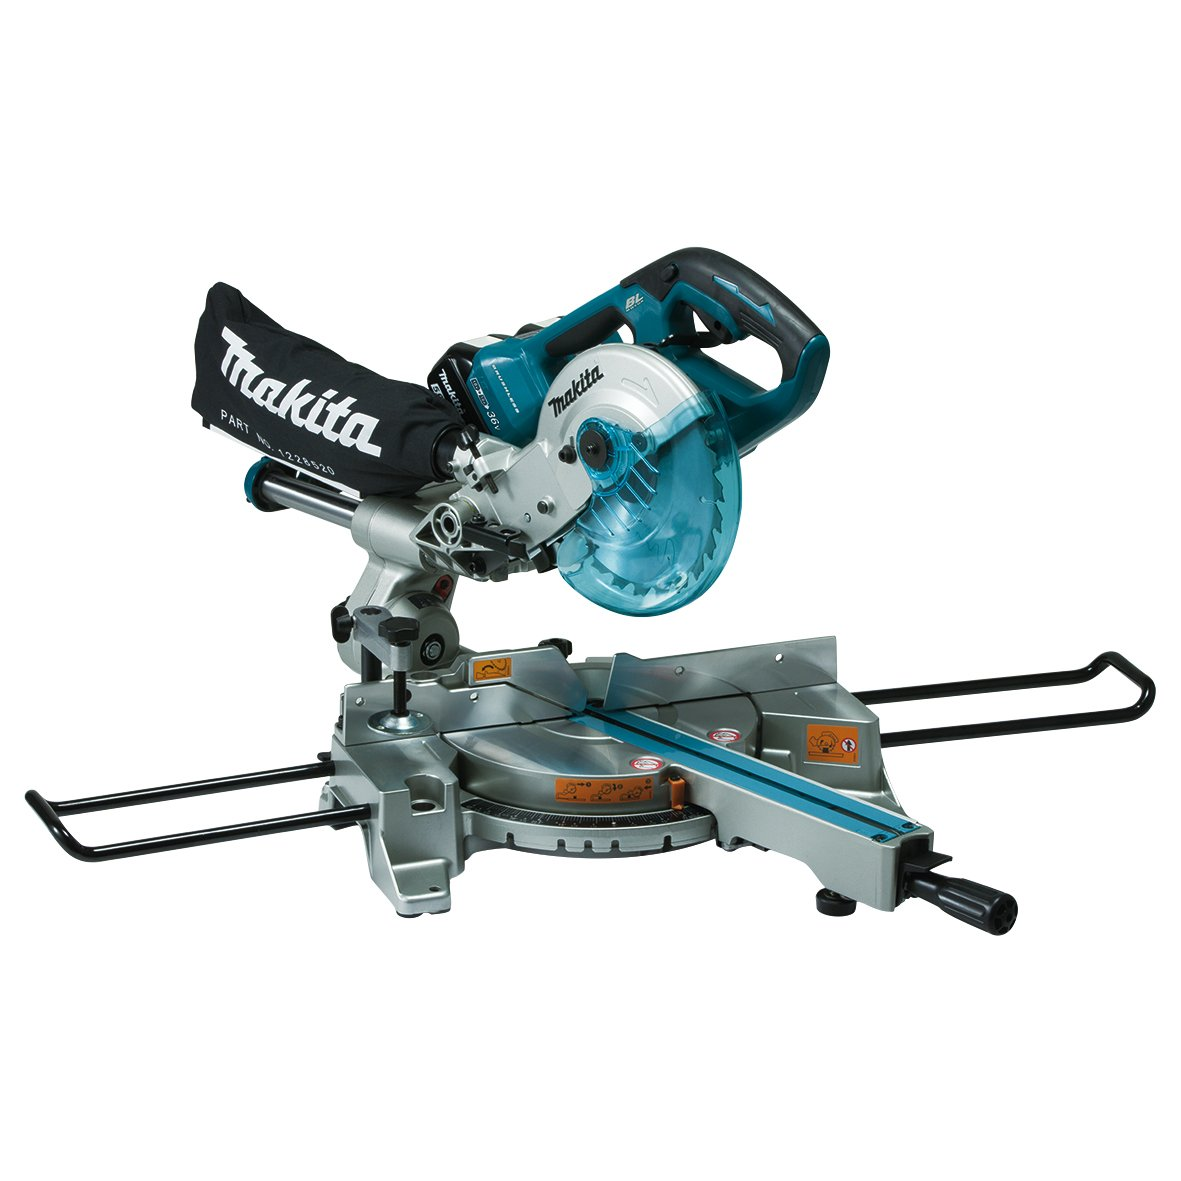 Makita DLS714Z Slide Compound Mitre Saw Twin 18V Cordless LTX 190mm (Body Only), 1 W, 36 V, Multi, Large><br /> </strong></h3> <p style=